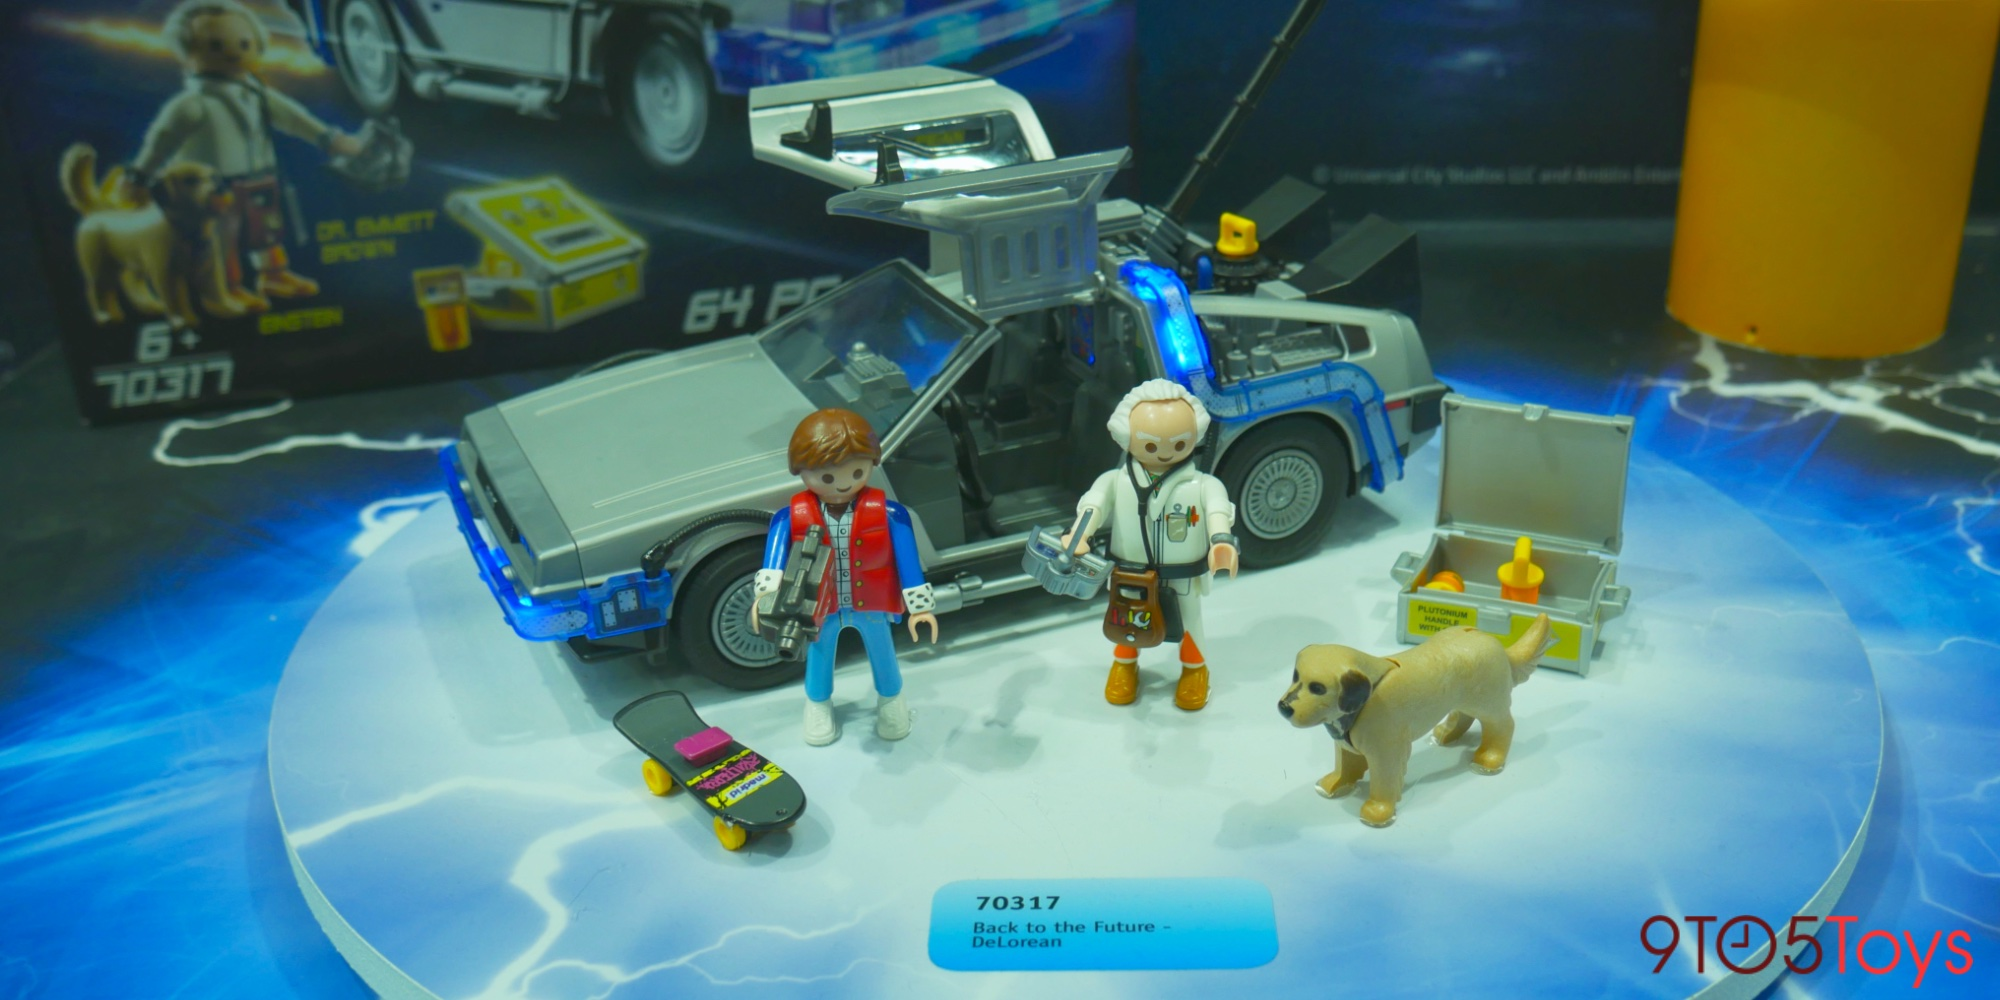 Playmobil Back to the Future DeLorean debuts at Toy Fair - 9to5Toys